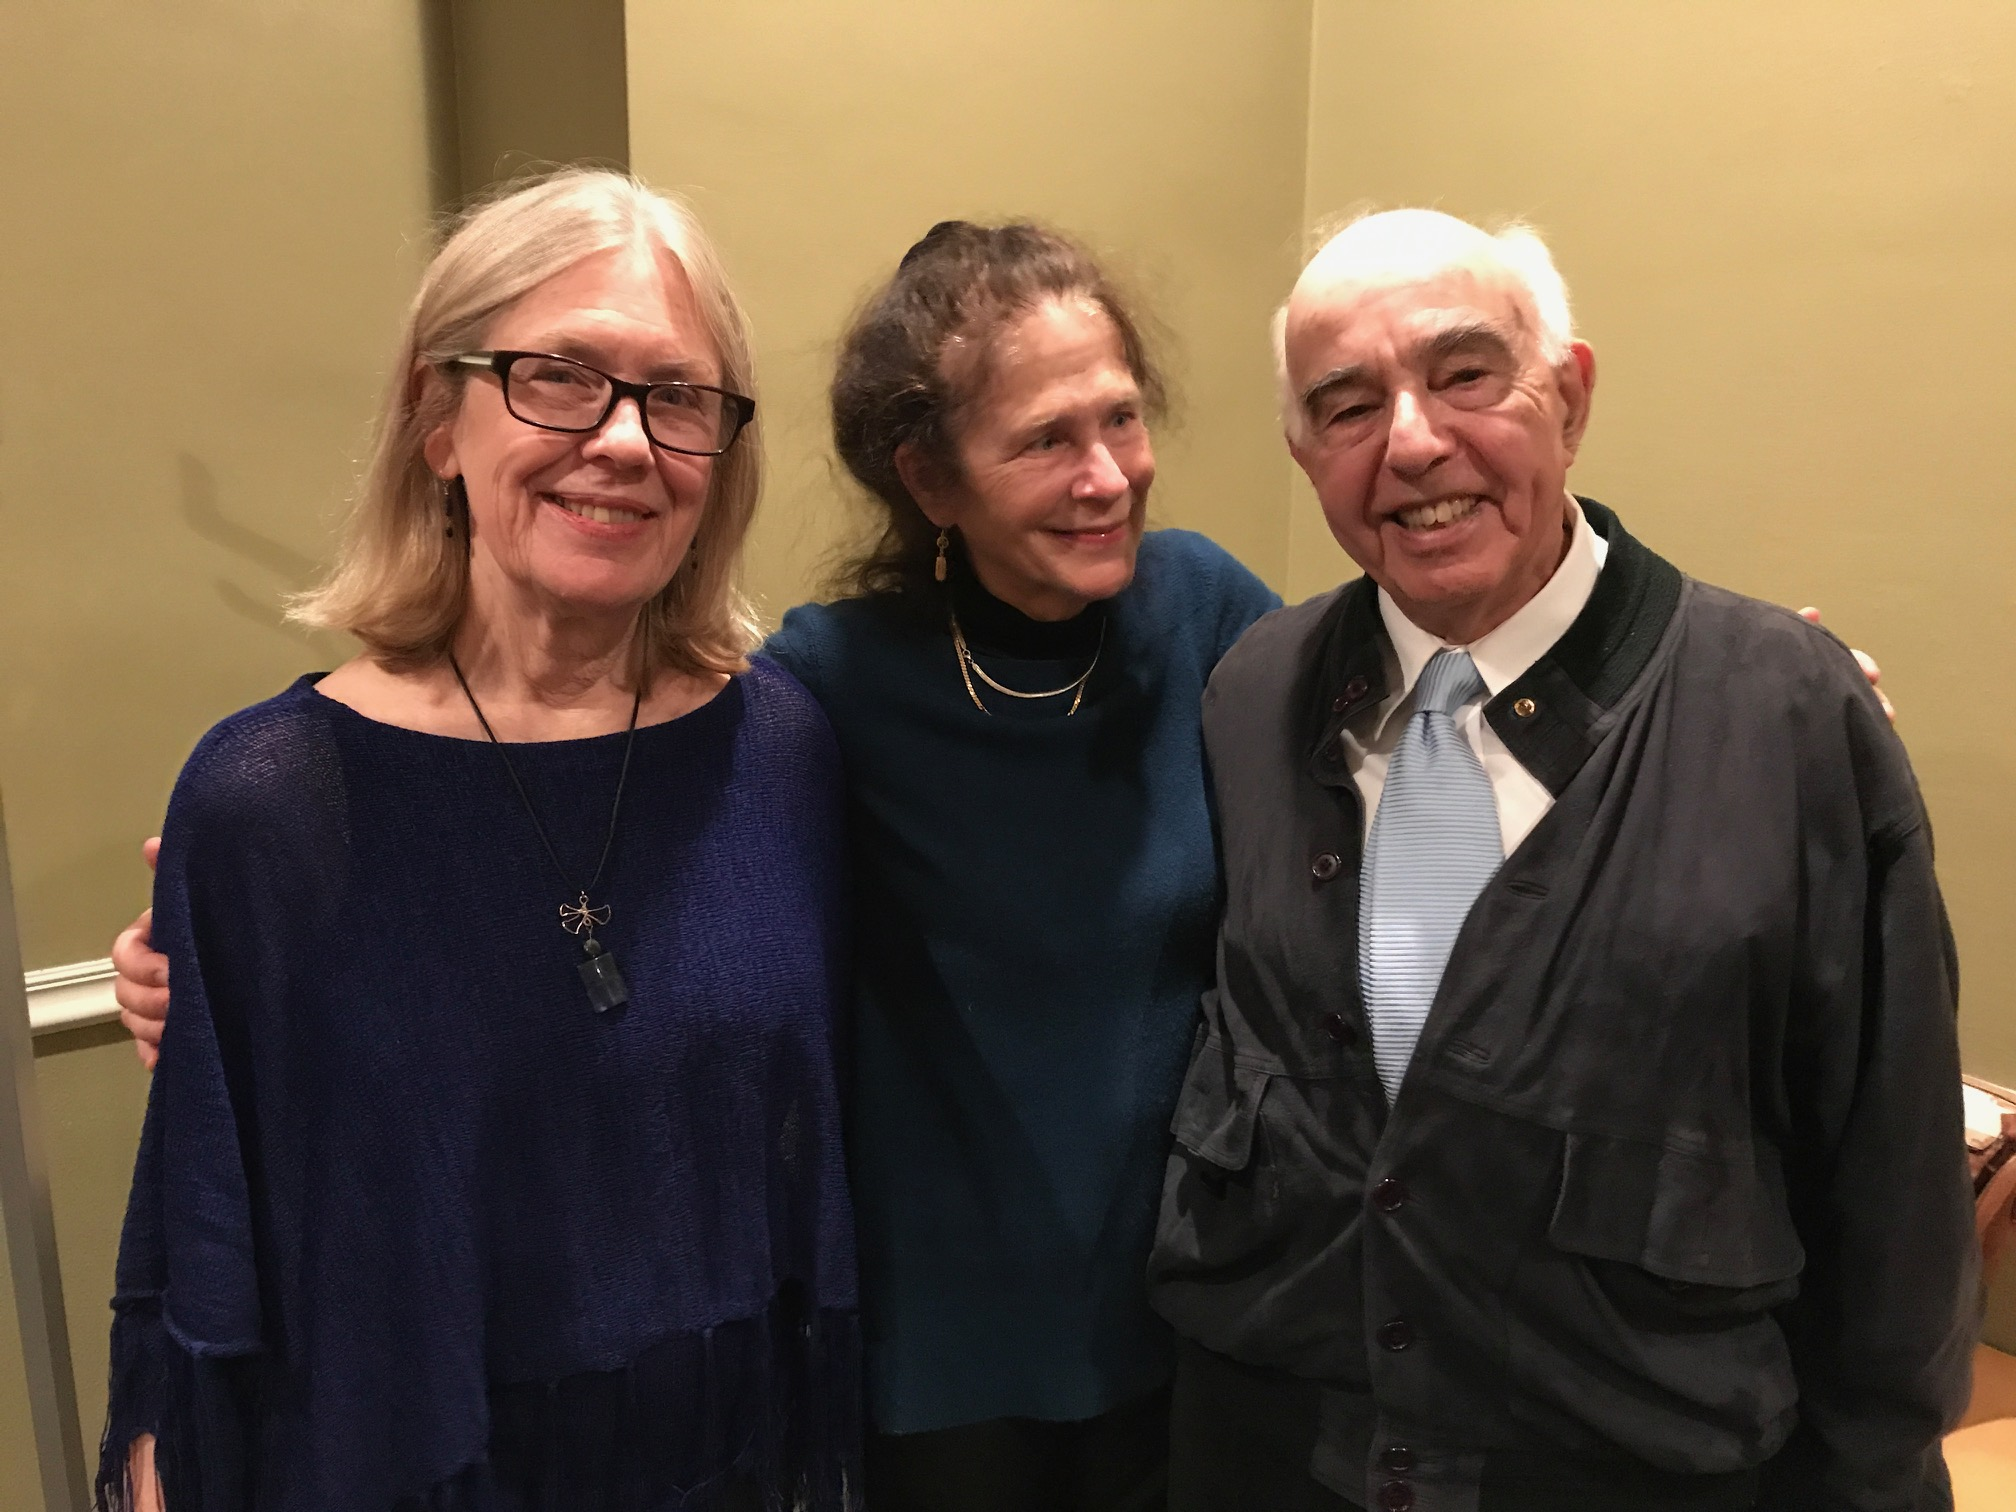 with Yehudi Wyner and Susan Davenny-Wyner after a Blue Streak Ensemble performance on the Vanguard Series and Kent State University